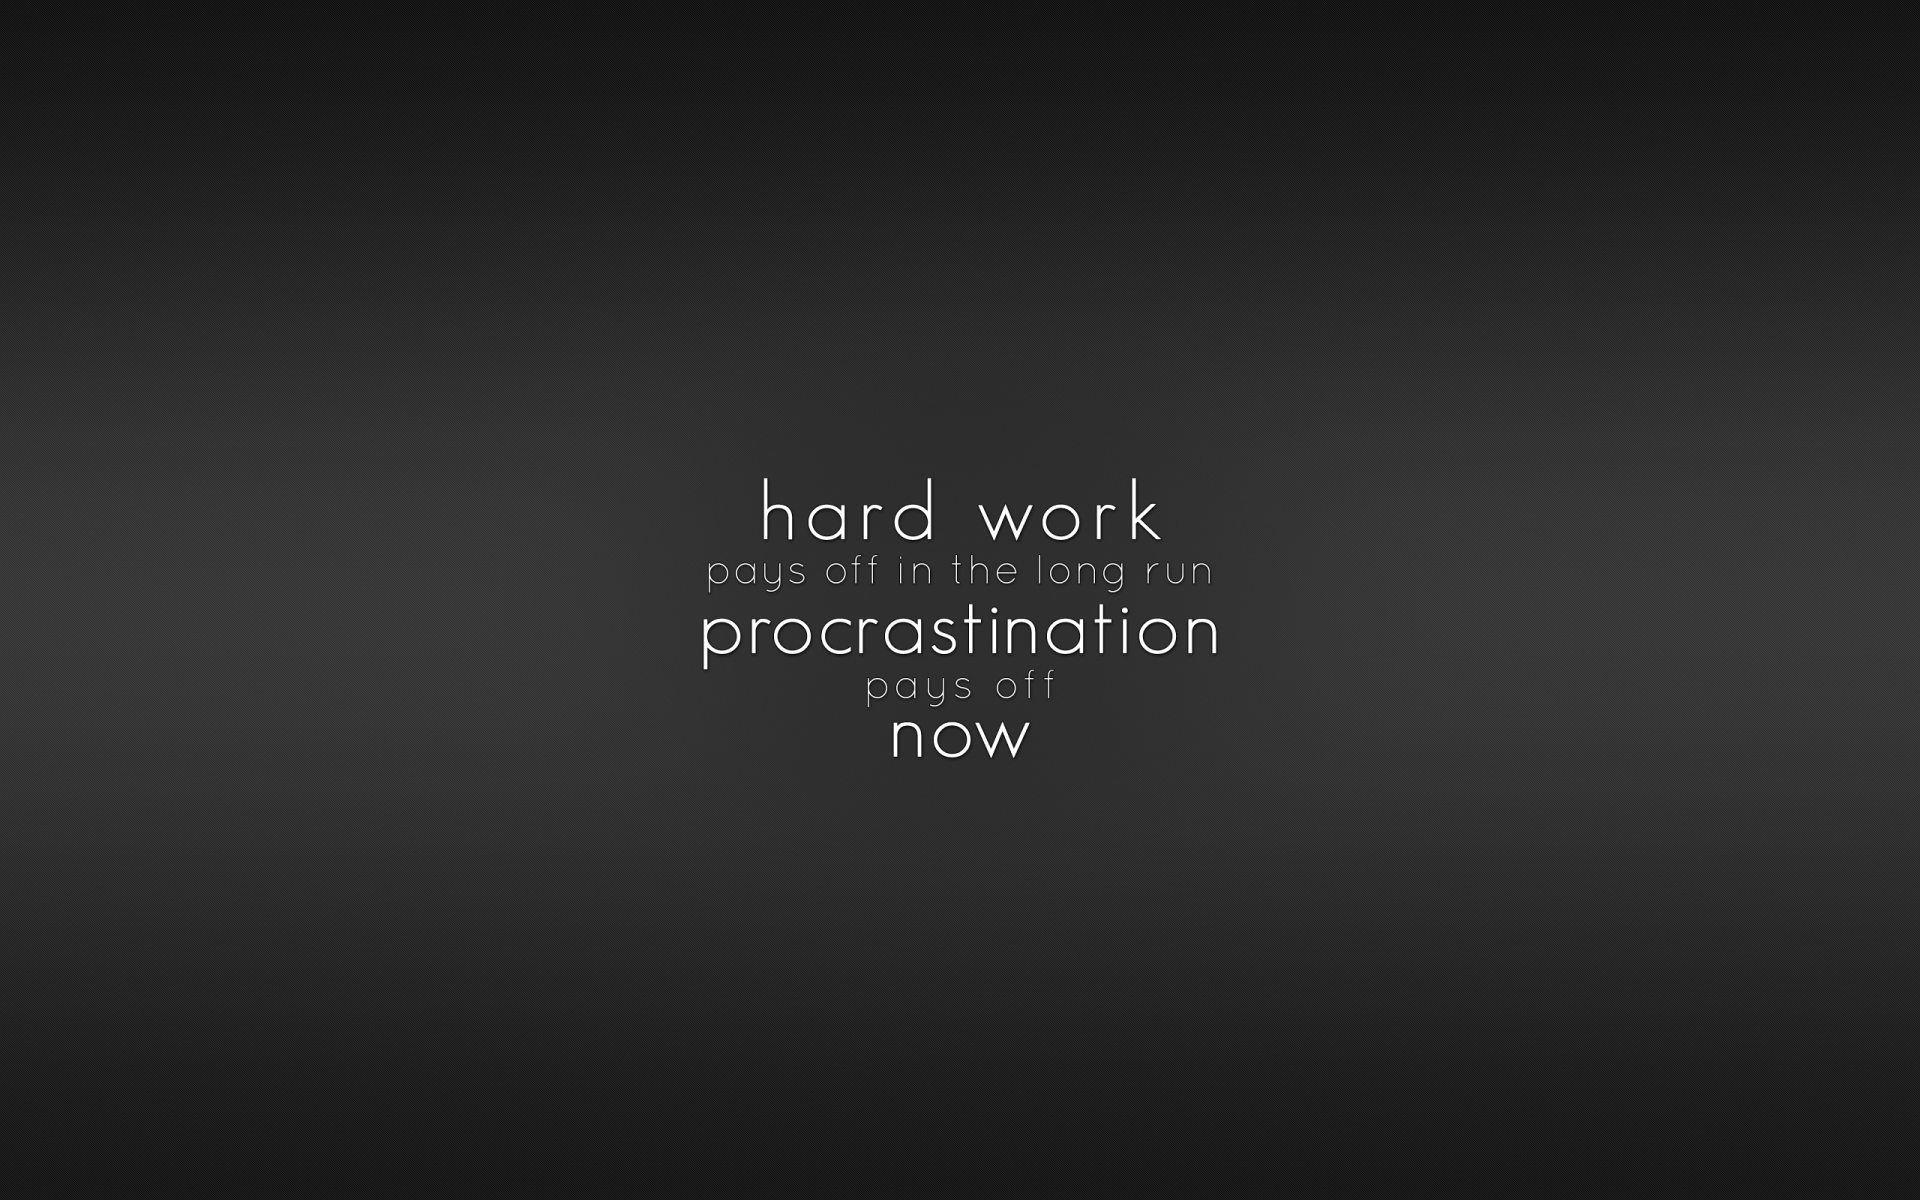 Work Hard wallpaper With Your Own creativeness